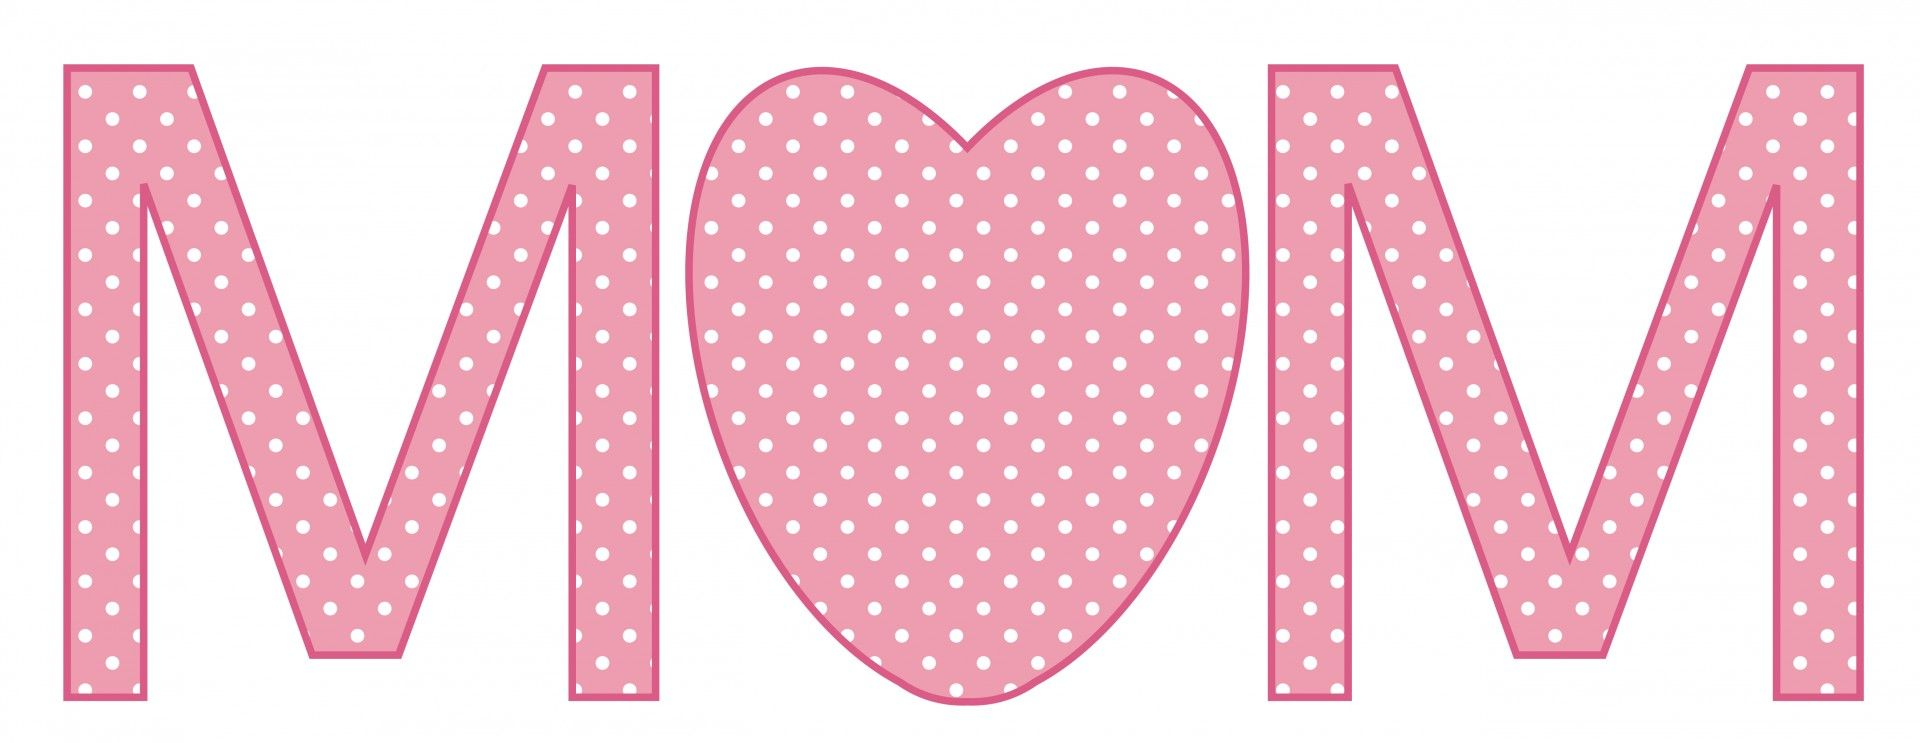 Heart clipart mothers day. Clip art mom text